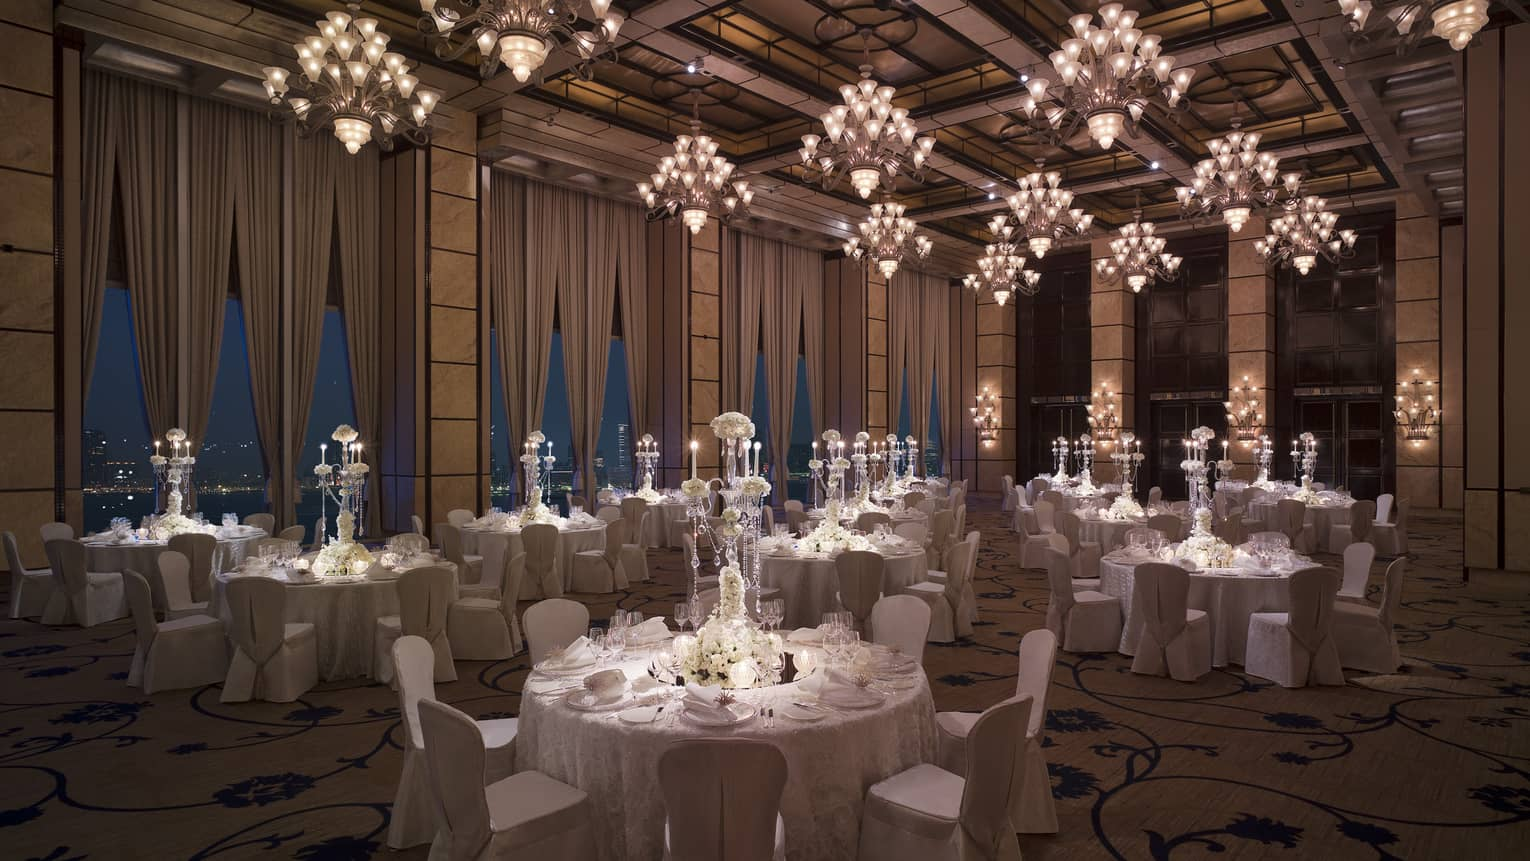 Wedding reception room with round banquet dining tables under small crystal chandeliers